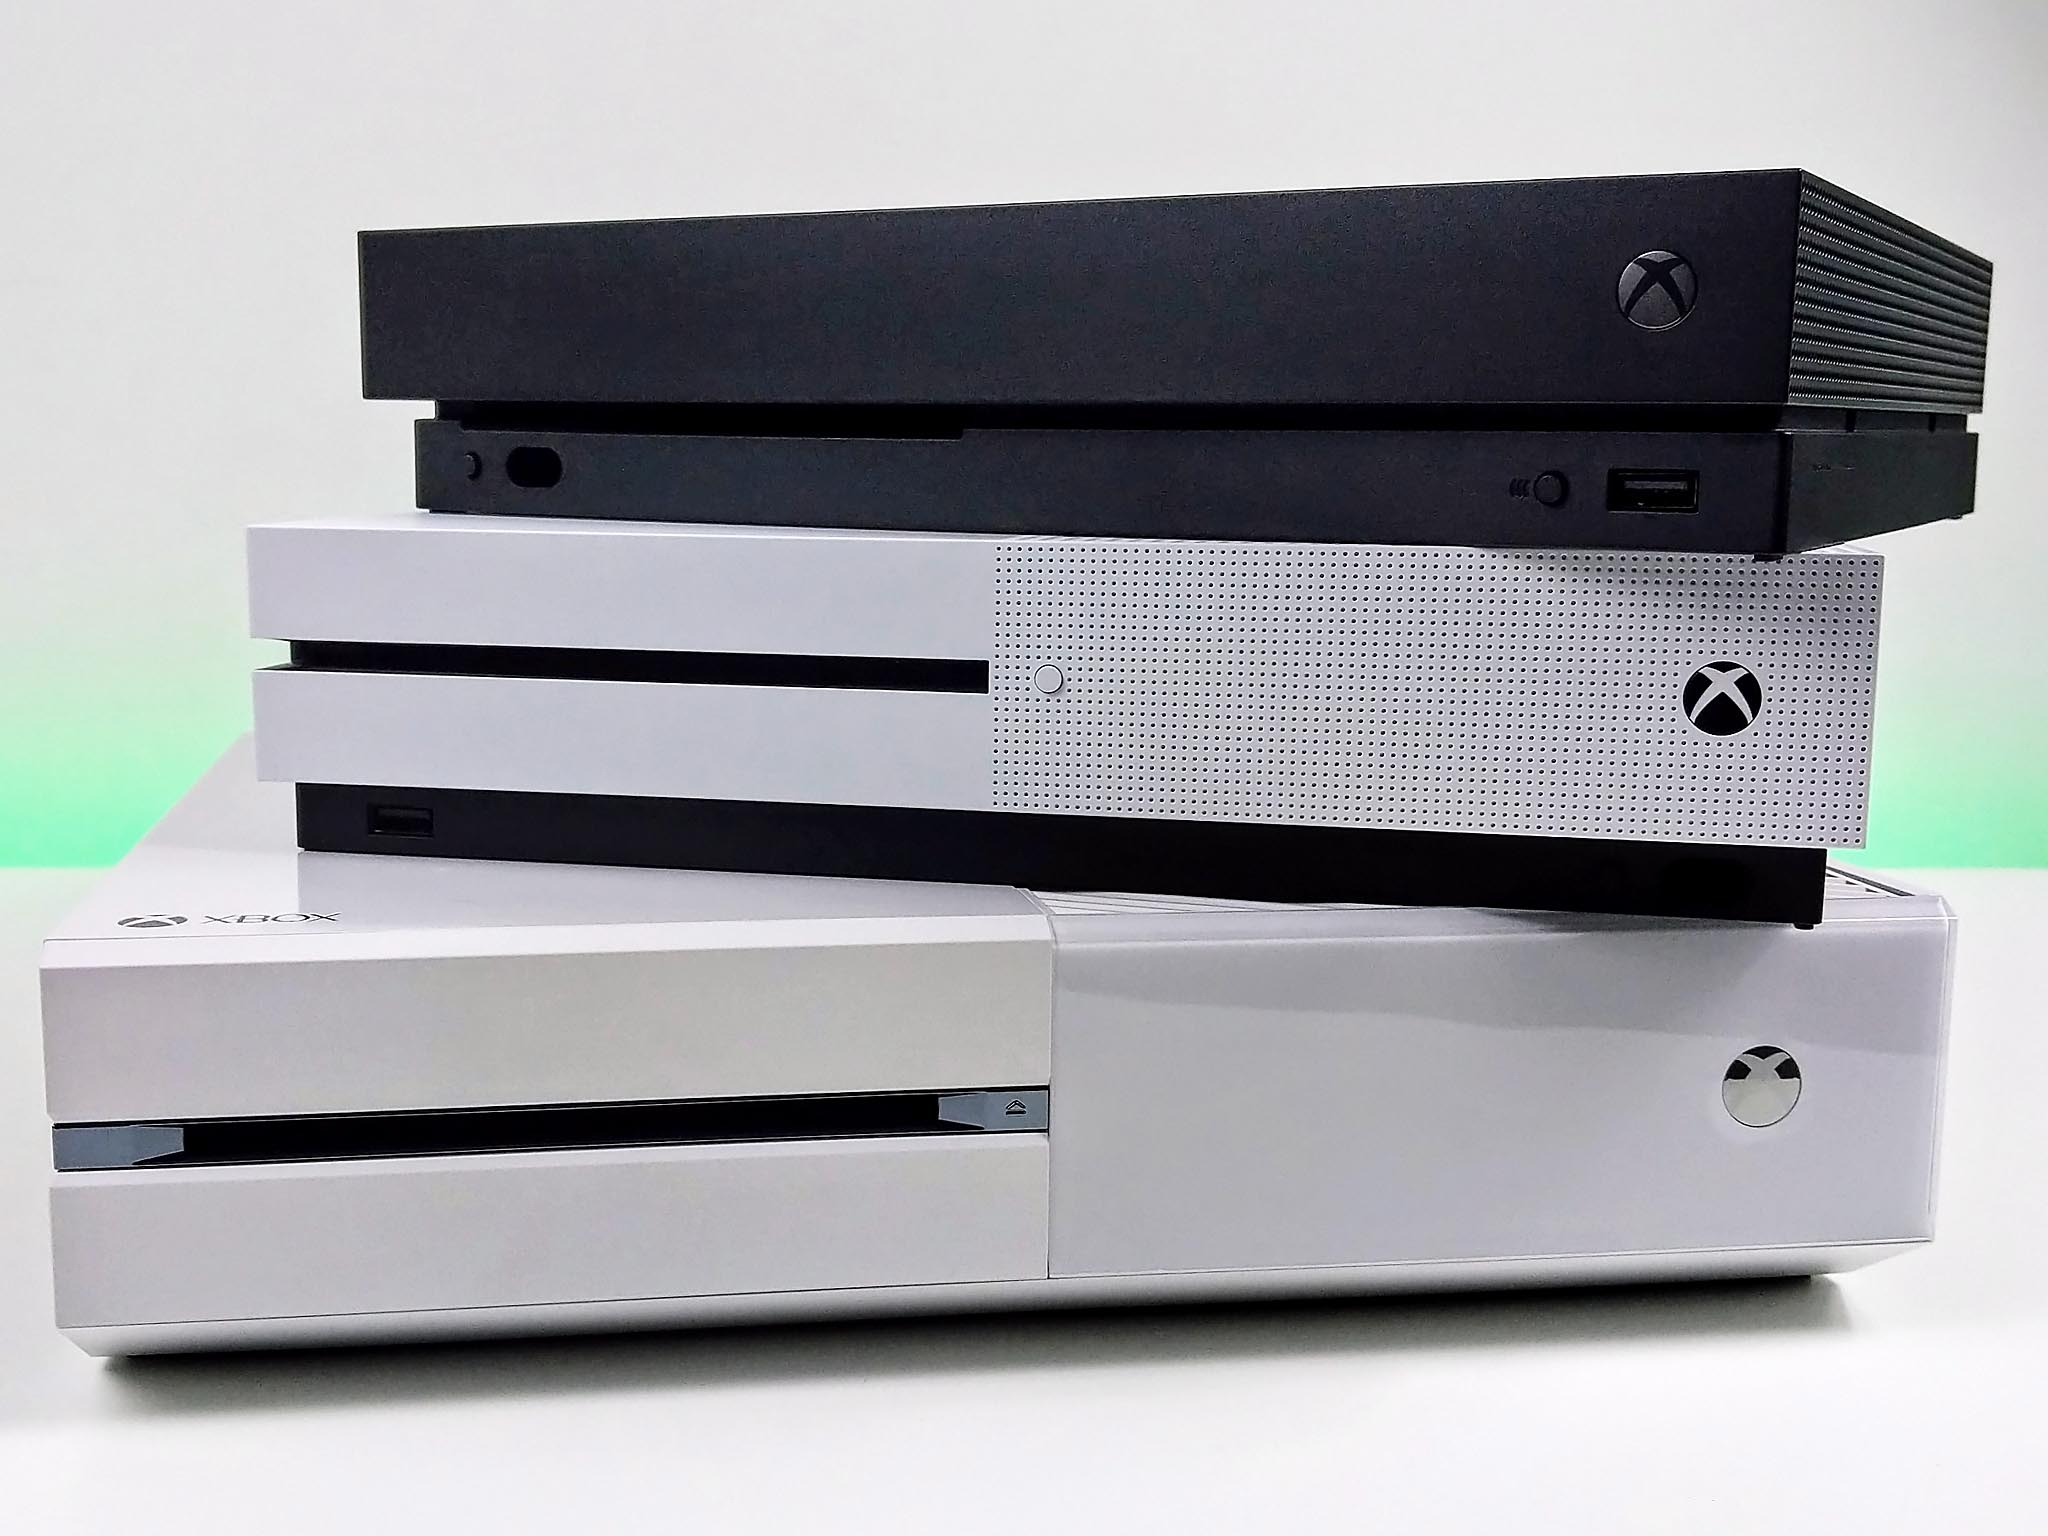 medium resolution of microsoft has sold three revisions of the xbox one over its four years on the market each major revision of the console has delivered various visual